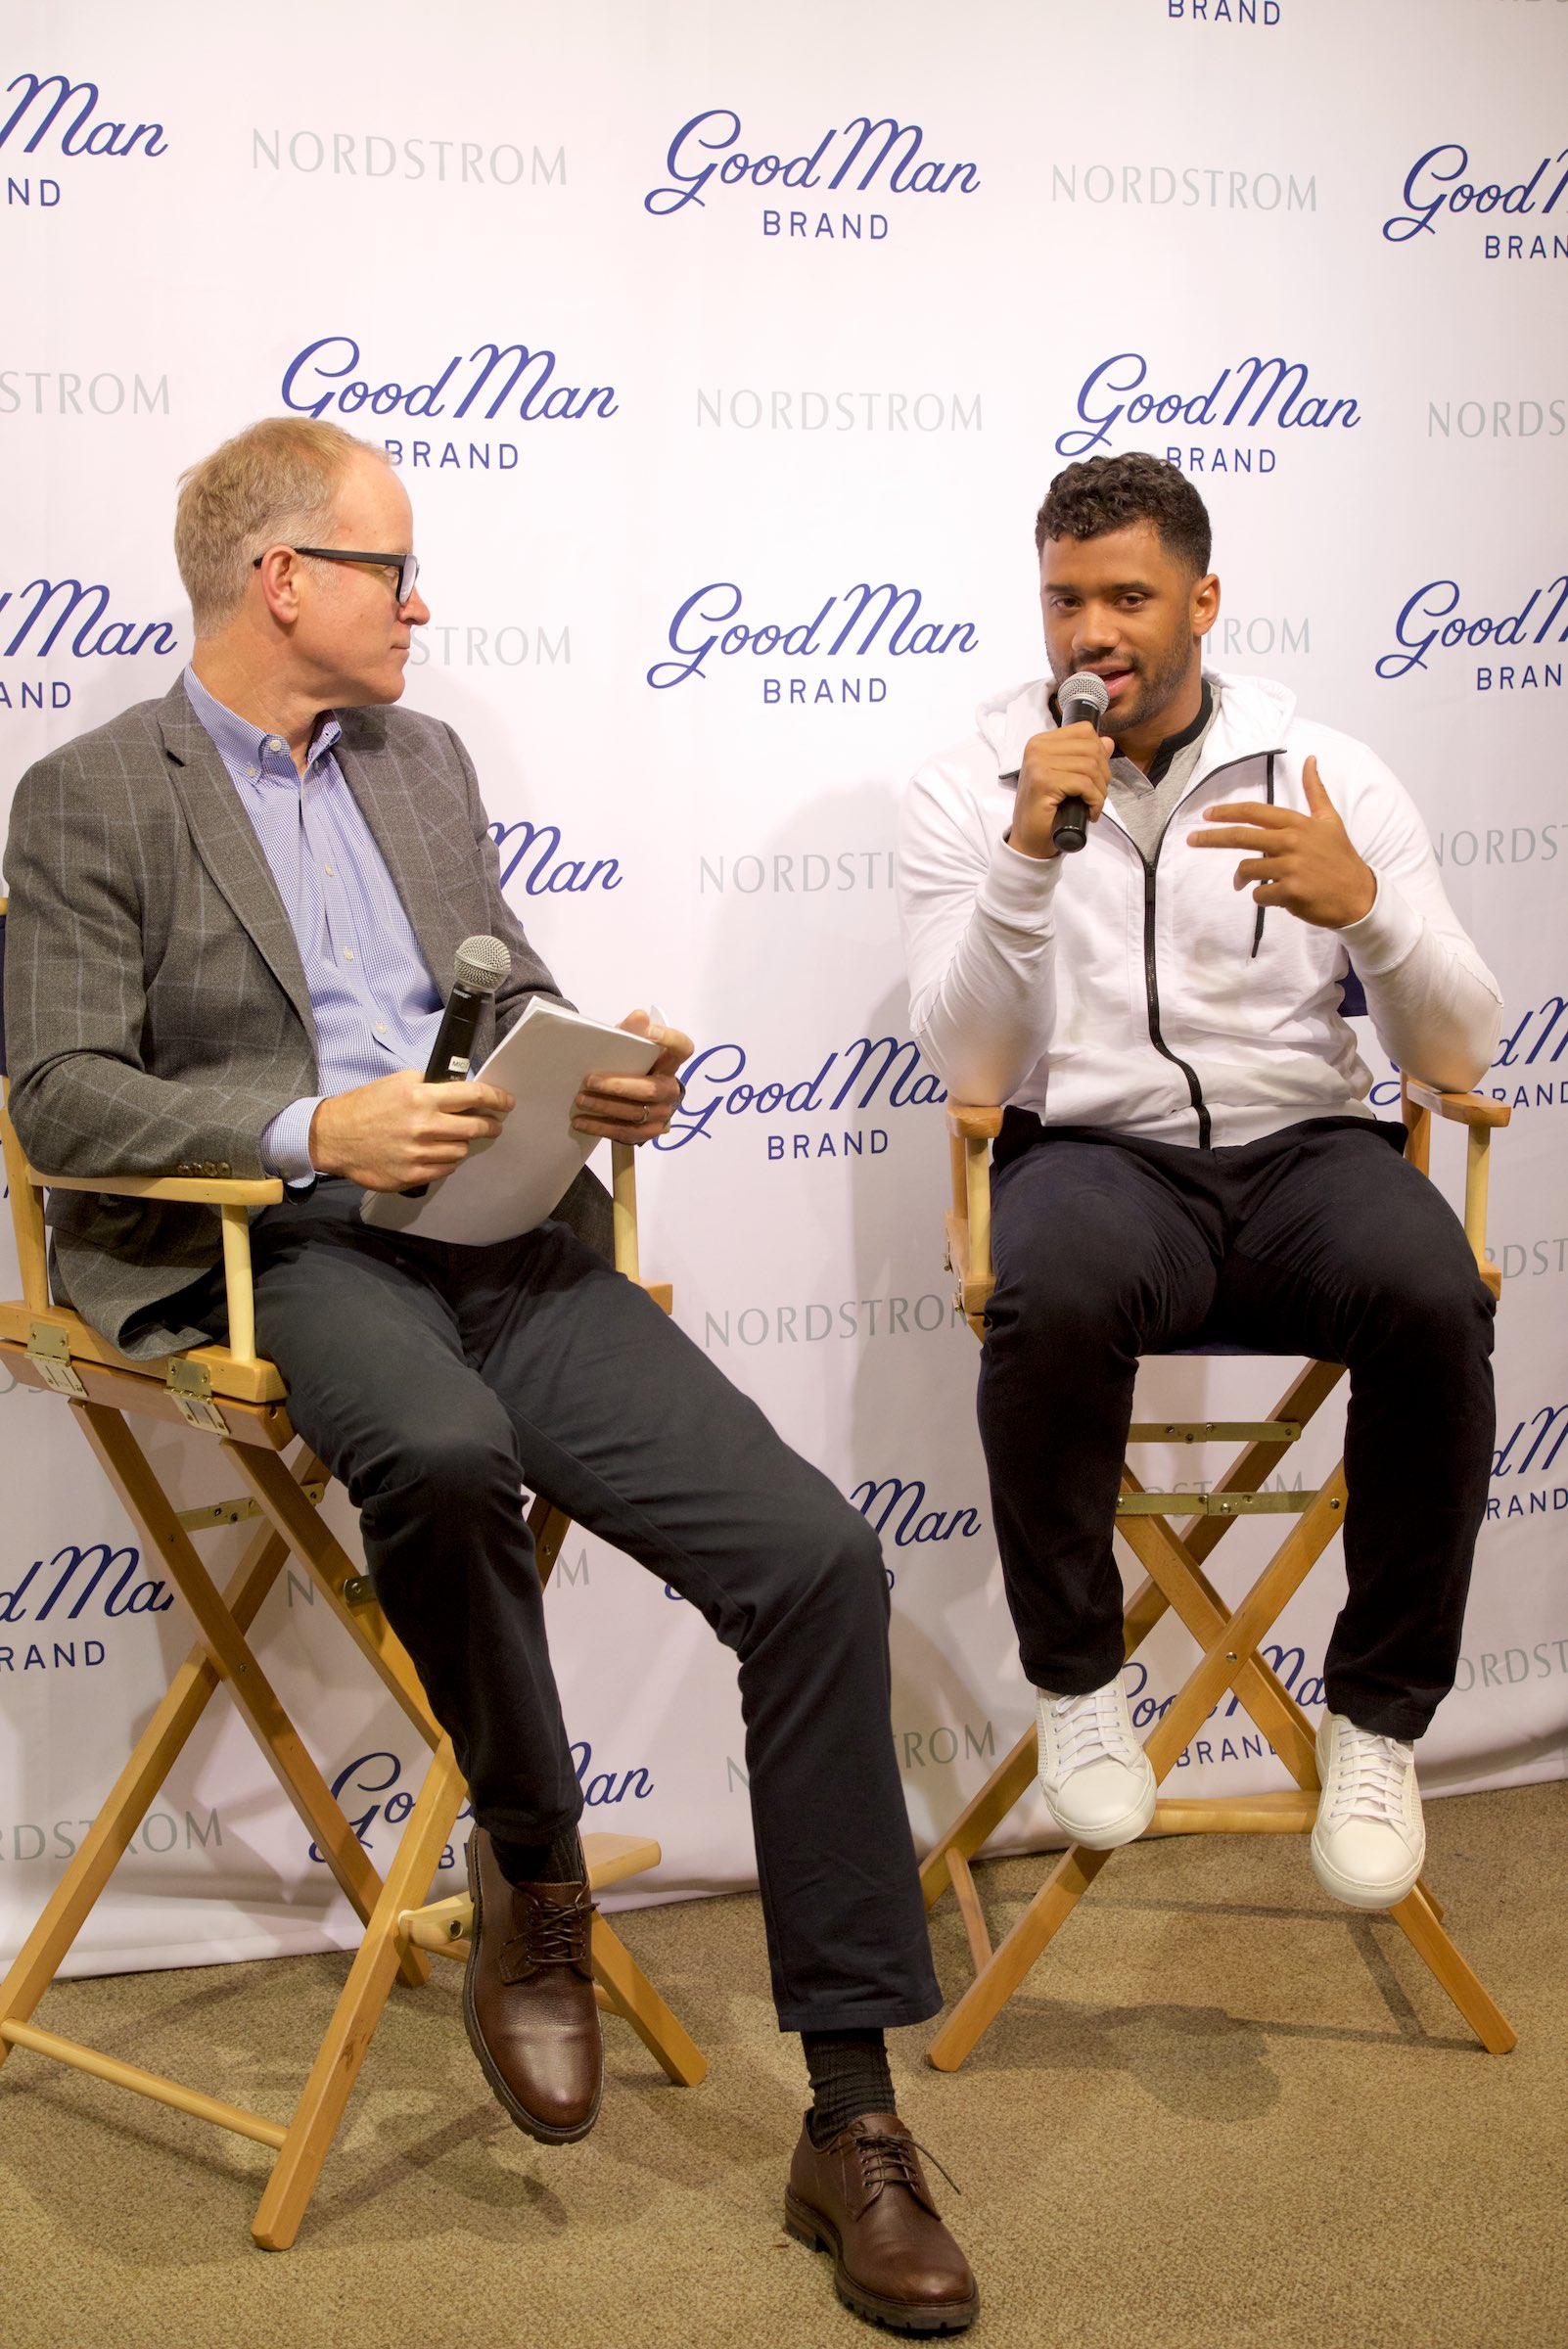 Good Man Brand Nordstrom Launch with Russell Wilson